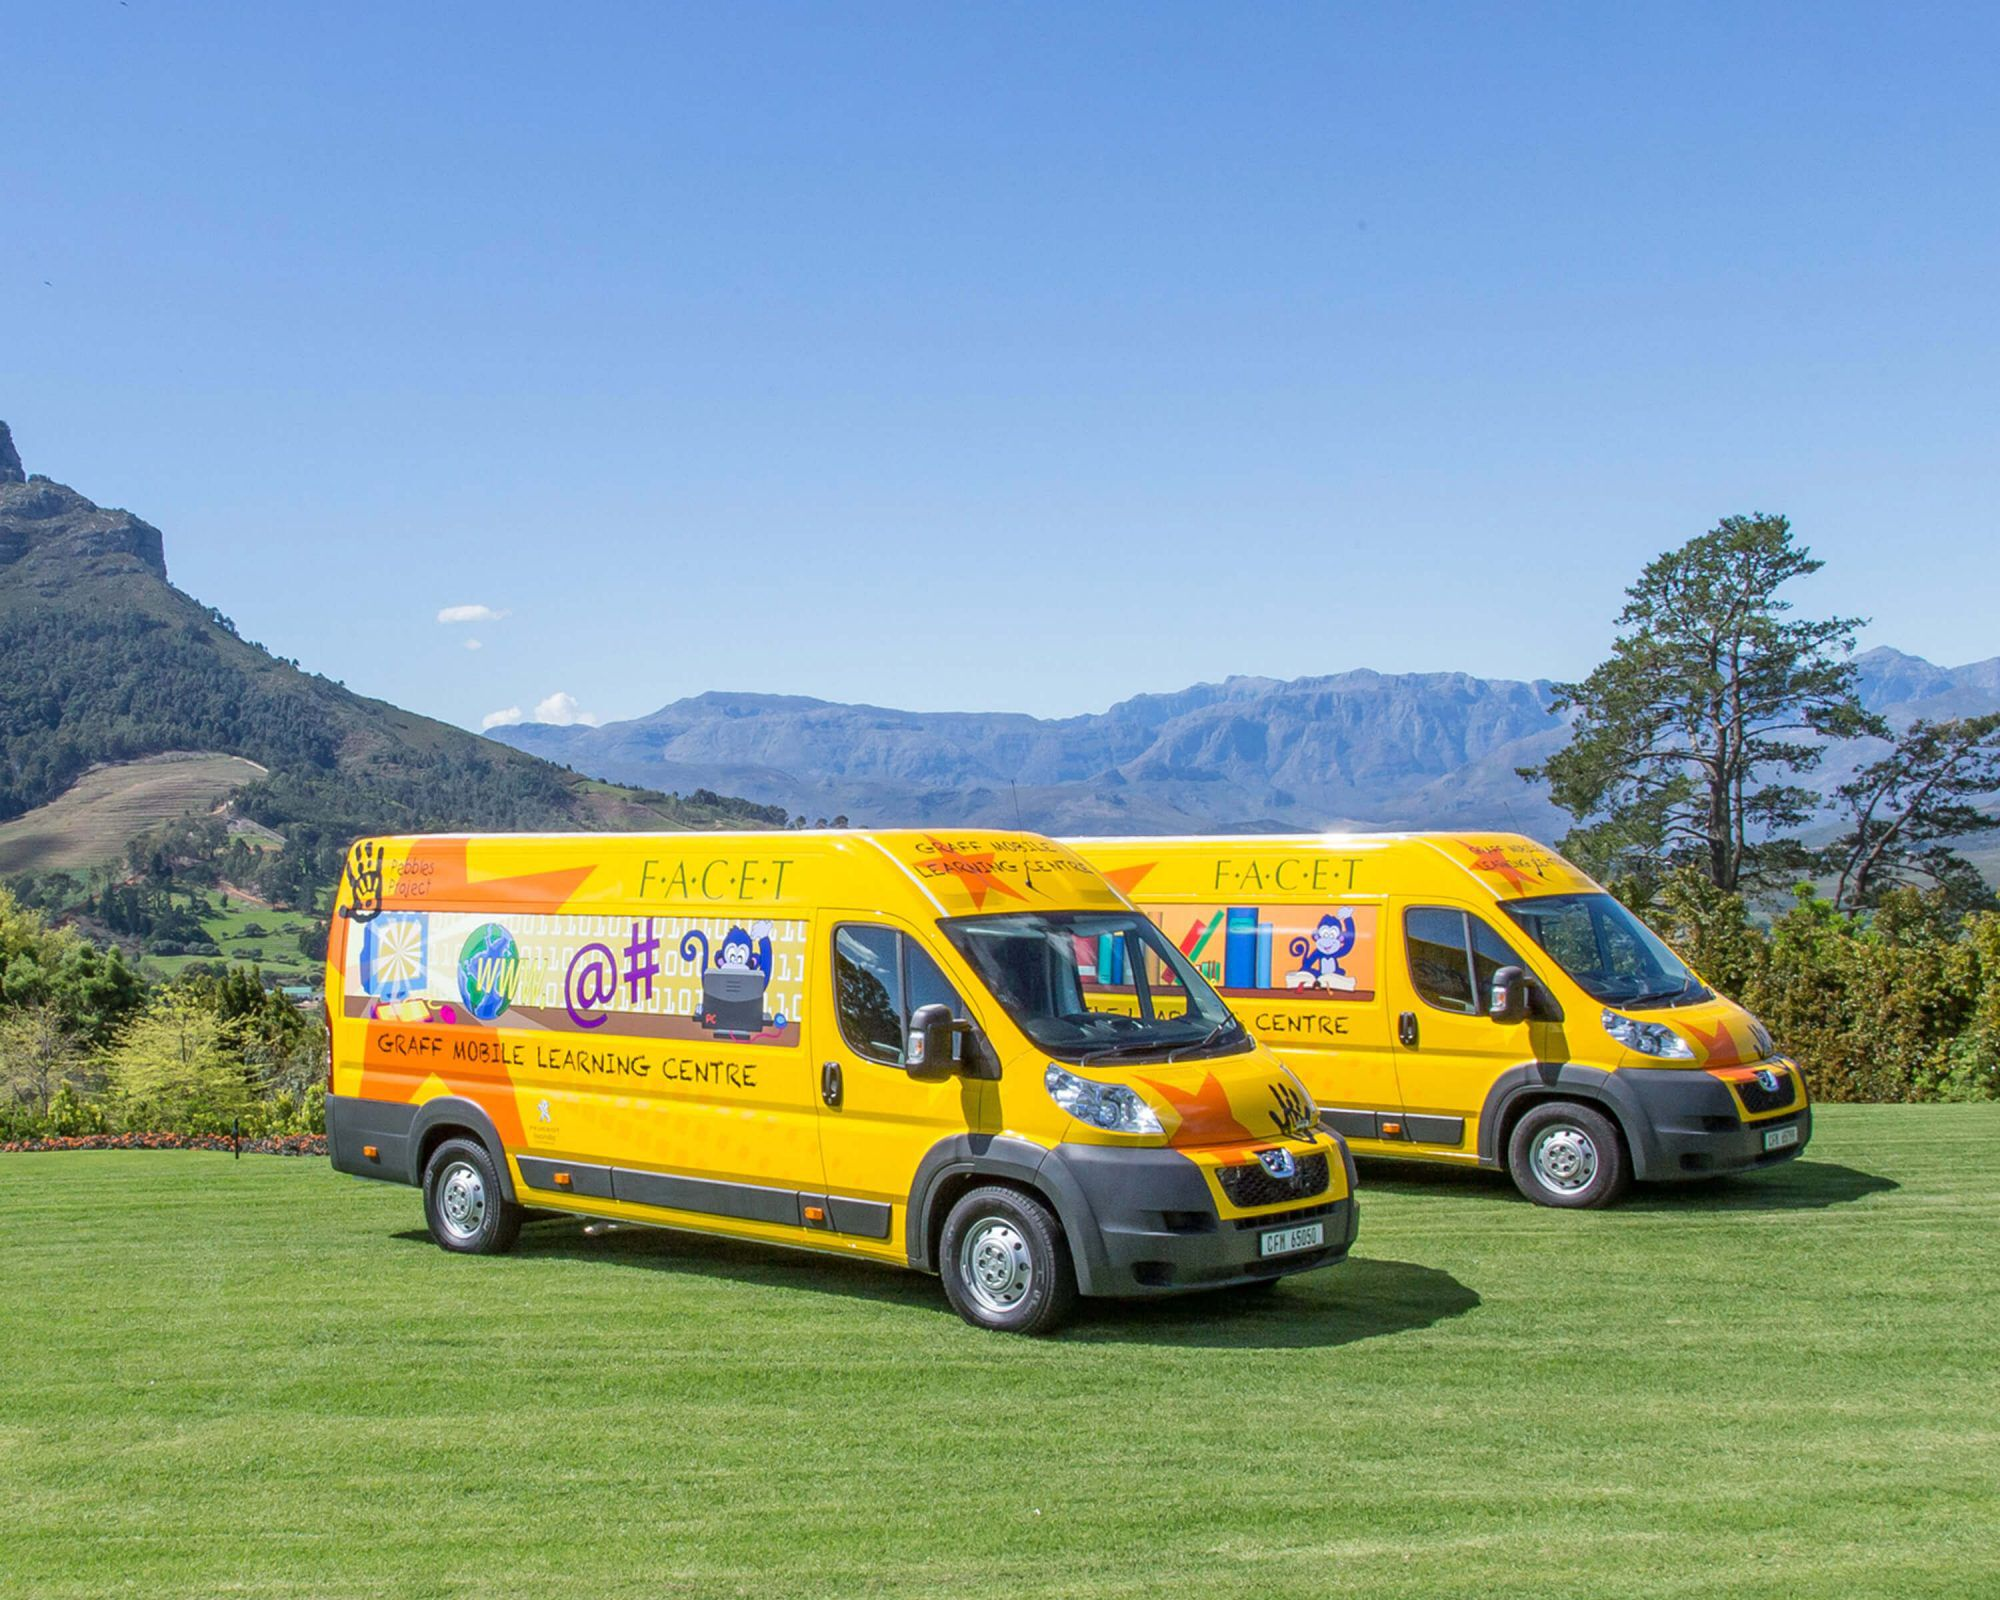 Graff FACET Foundation South Africa Mobile Library